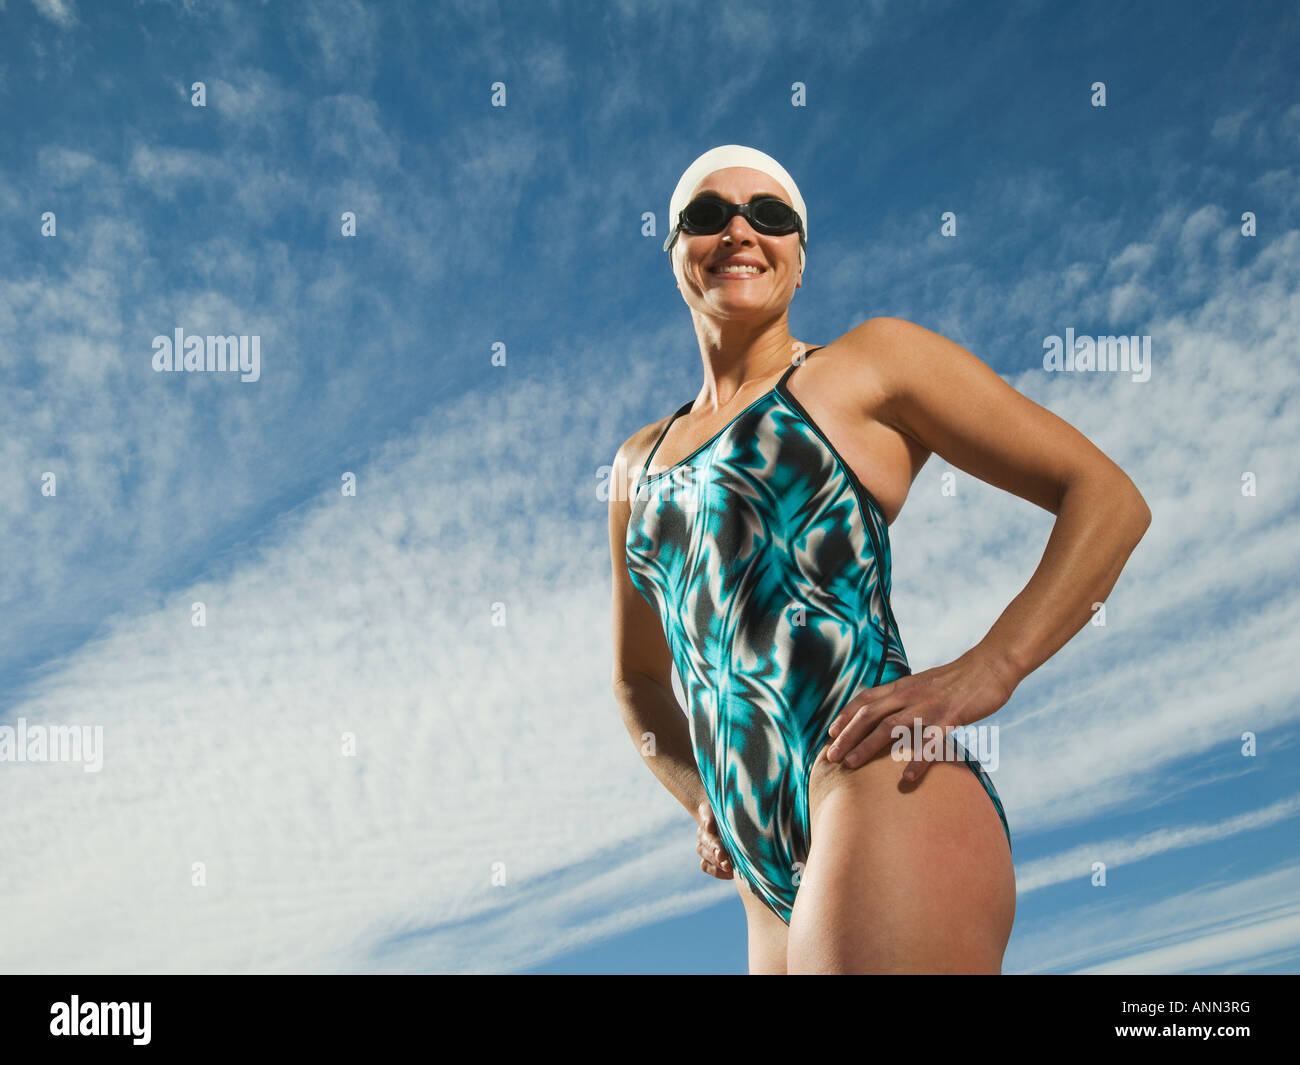 Female swimmer with hands on hips, Utah, United States - Stock Image